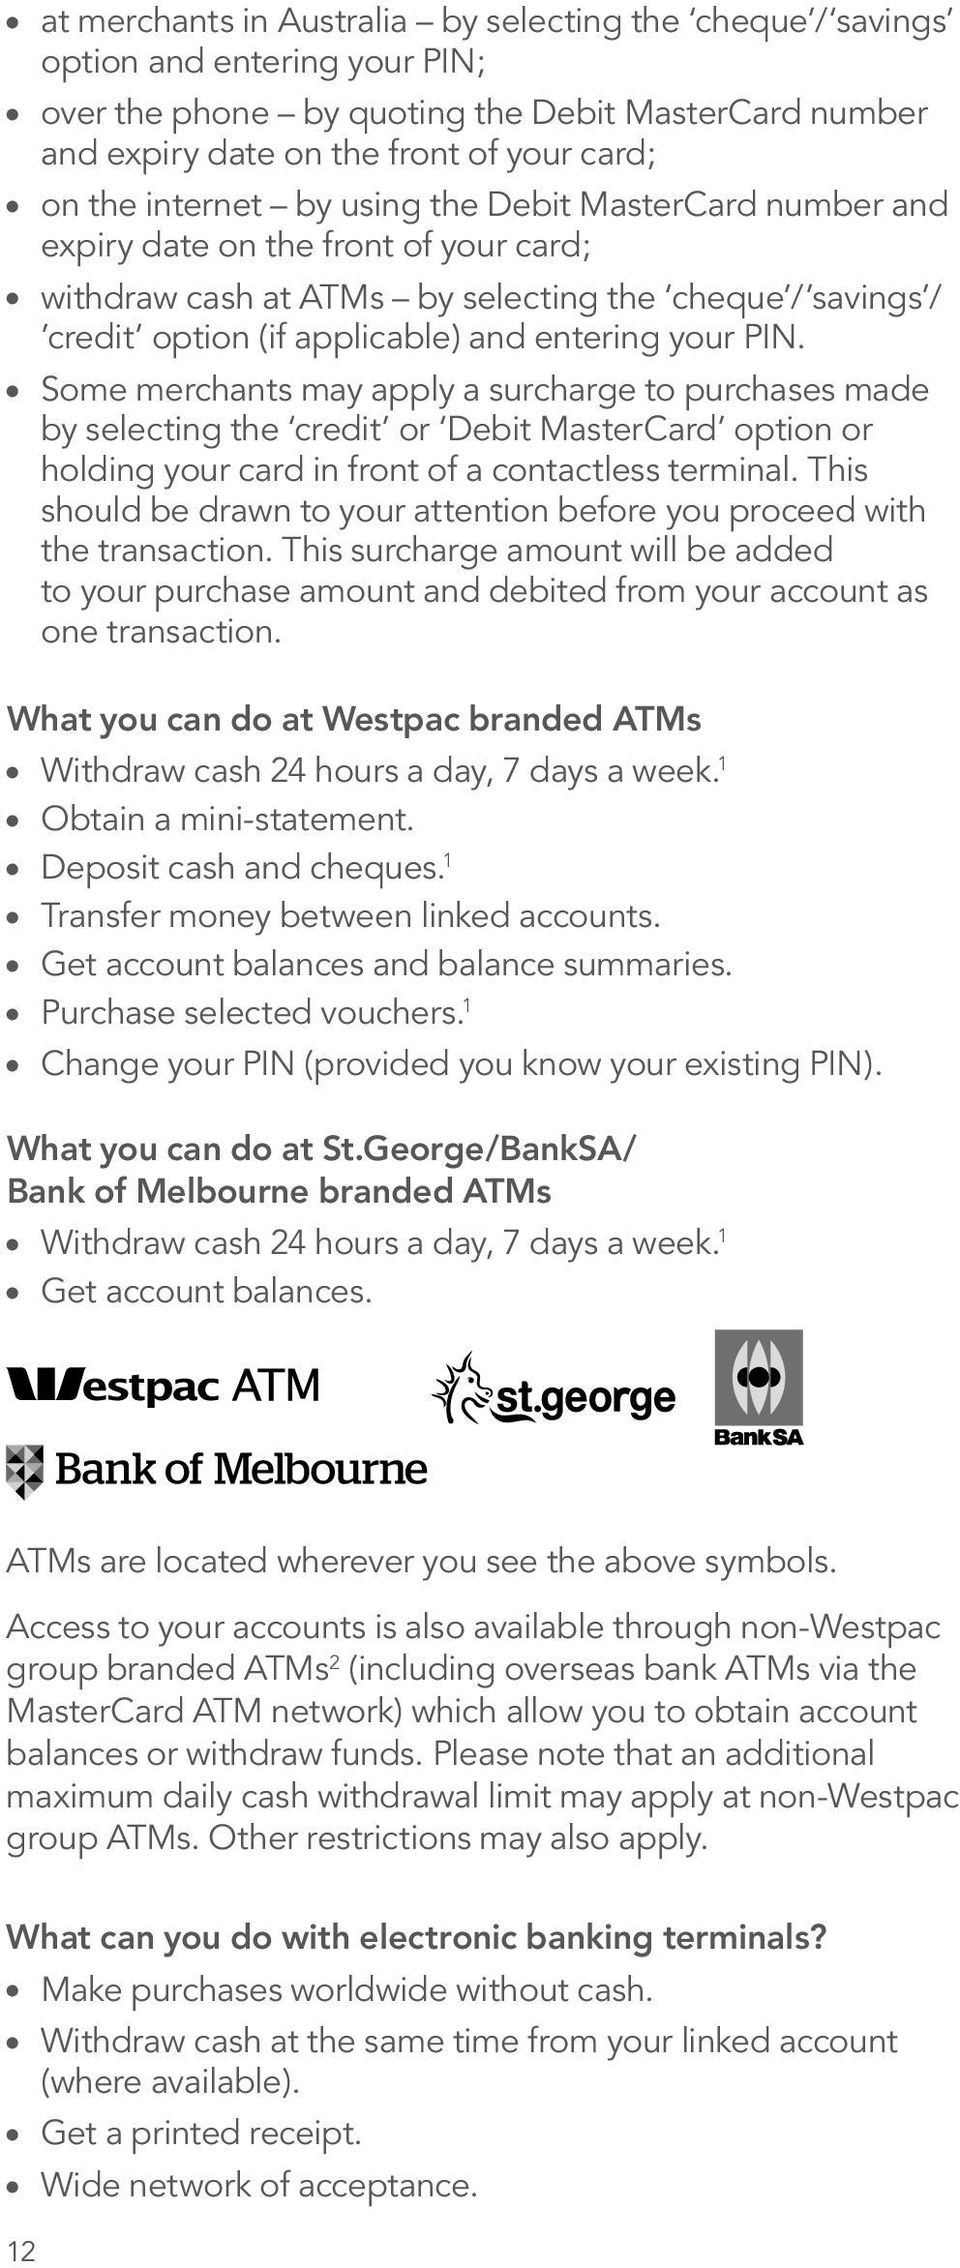 Westpac Debit MasterCard  Terms and Conditions for Personal